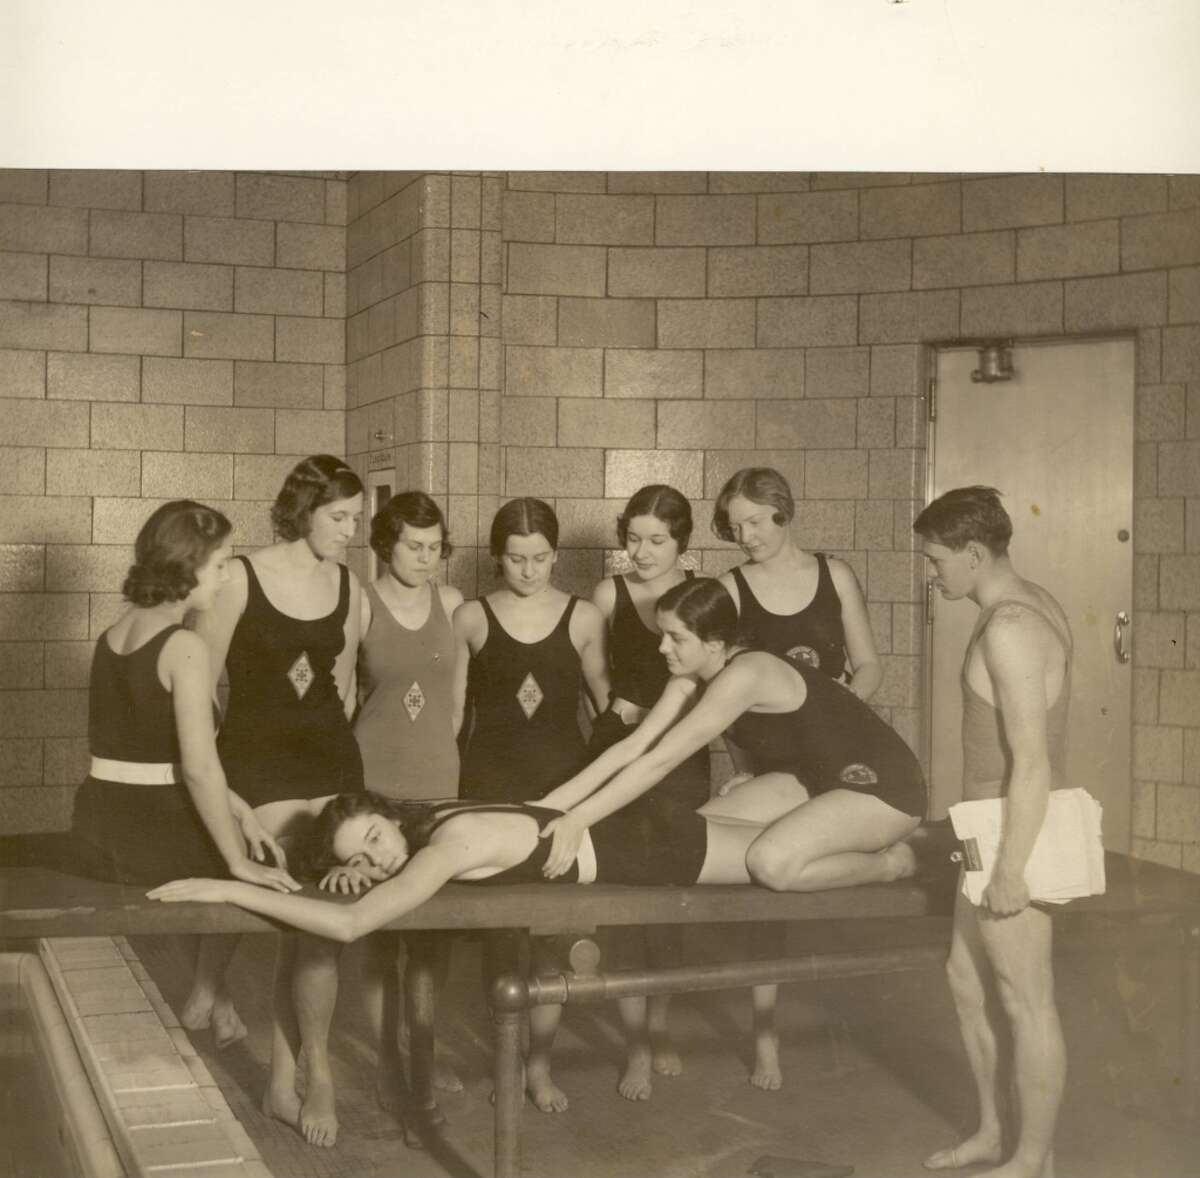 A lifesaving course for women in the early 1930s.